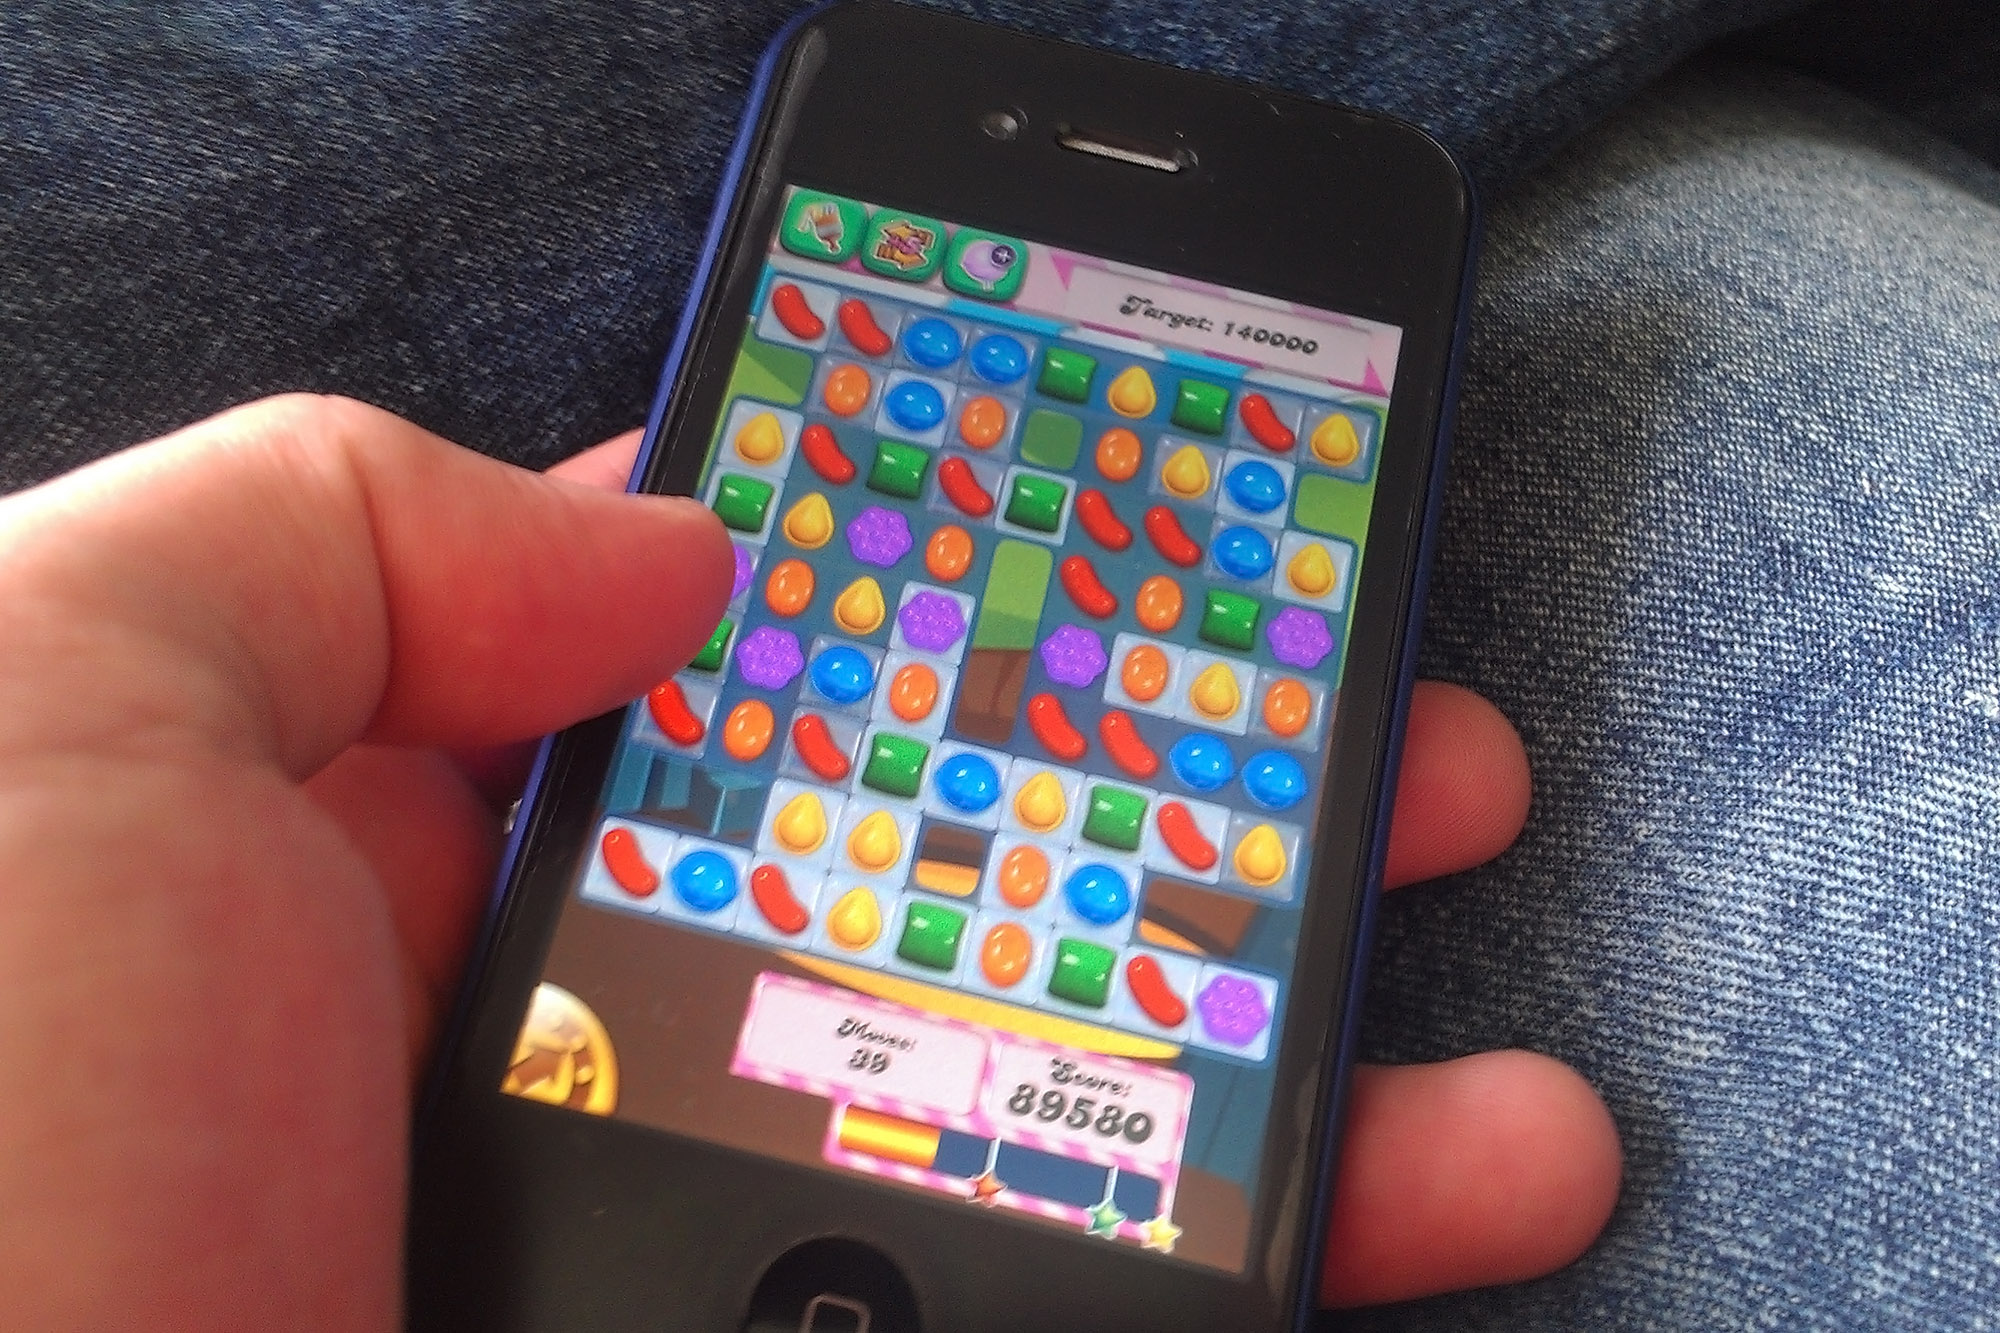 Candy Crush Saga from U.K. company King.